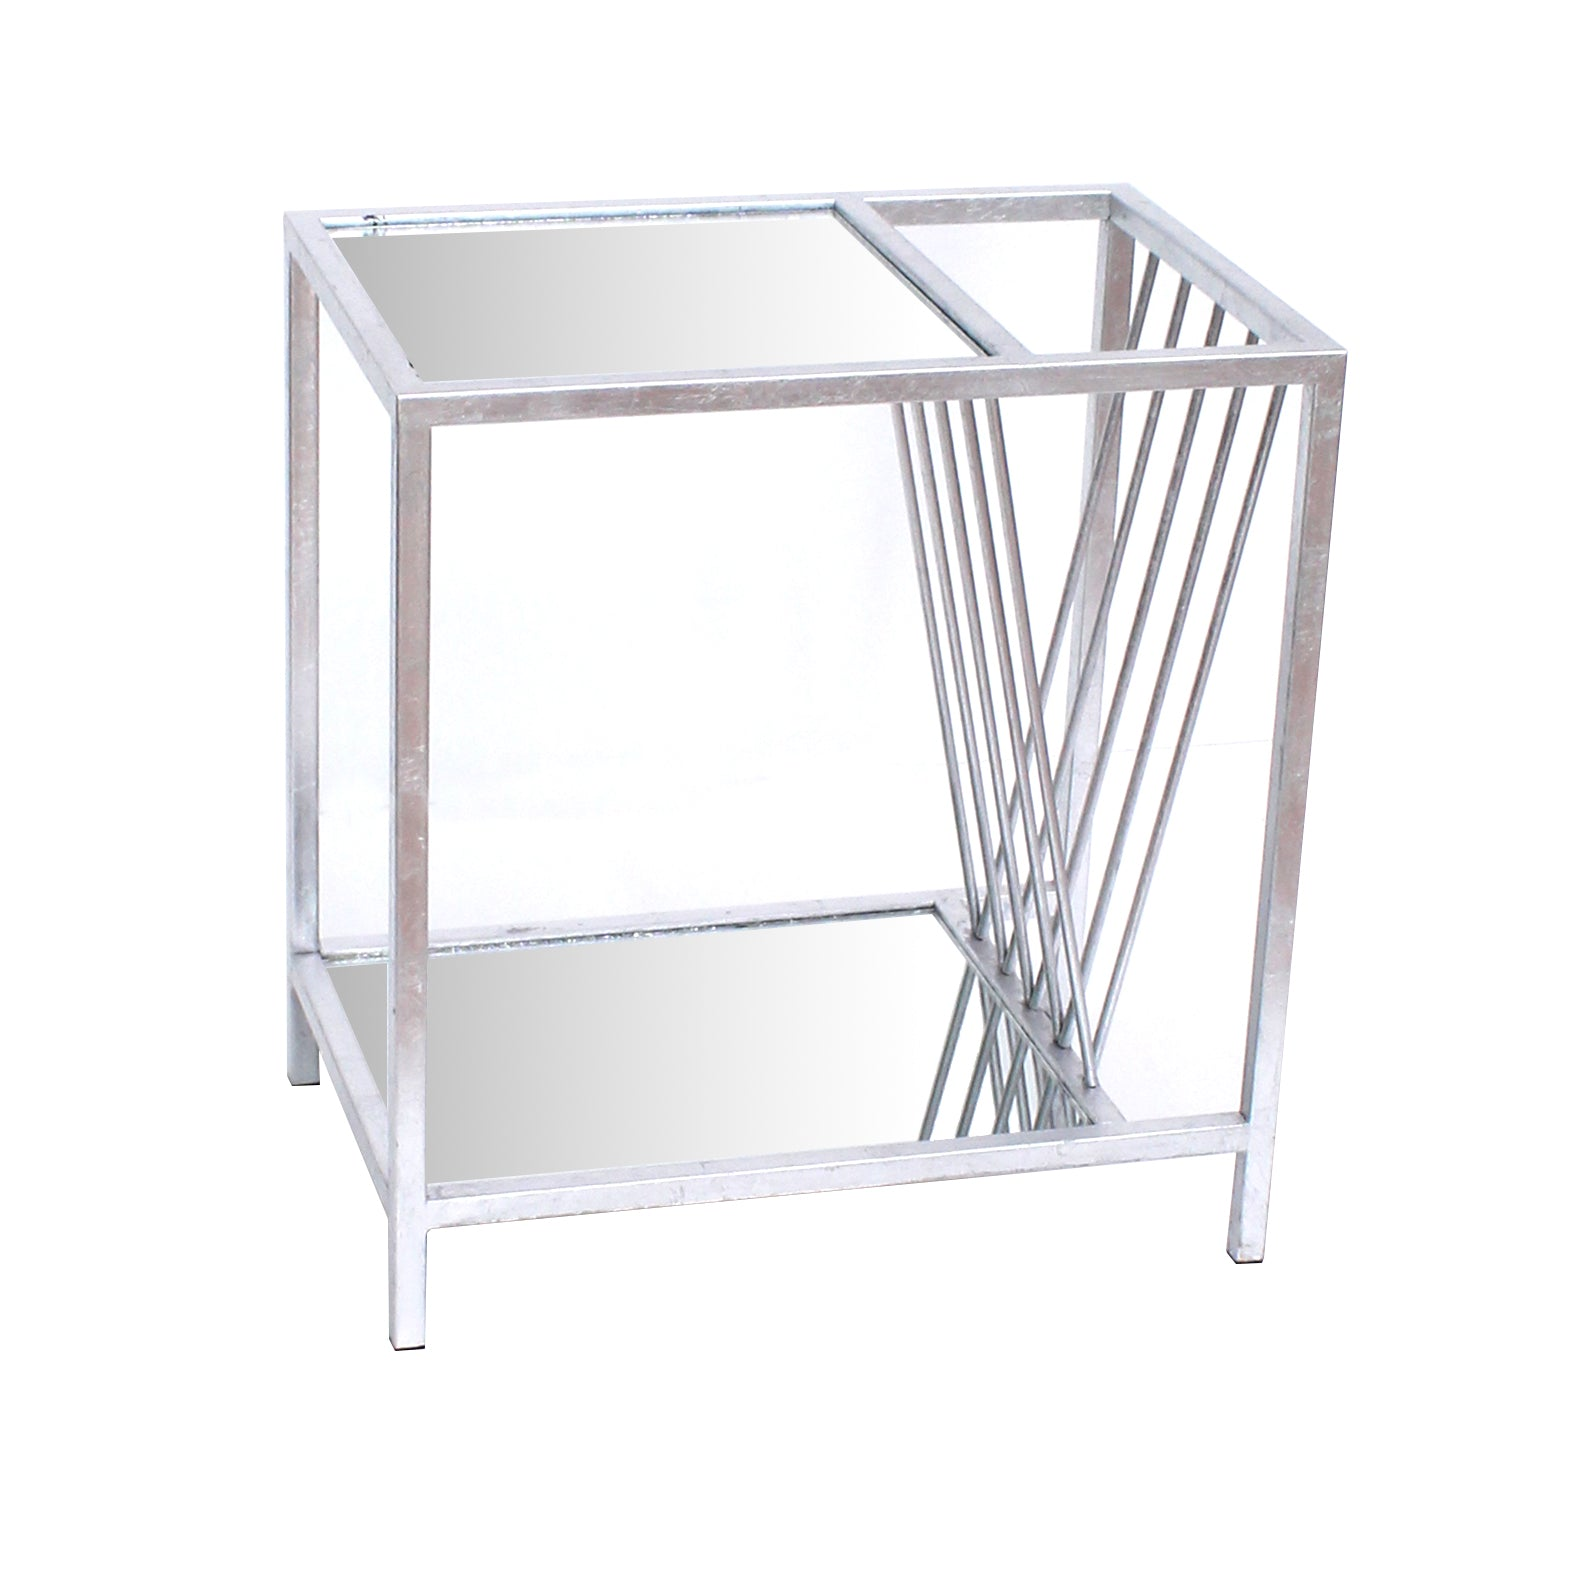 "15"" x 23"" x 24"" Silver, Metal- End Table"